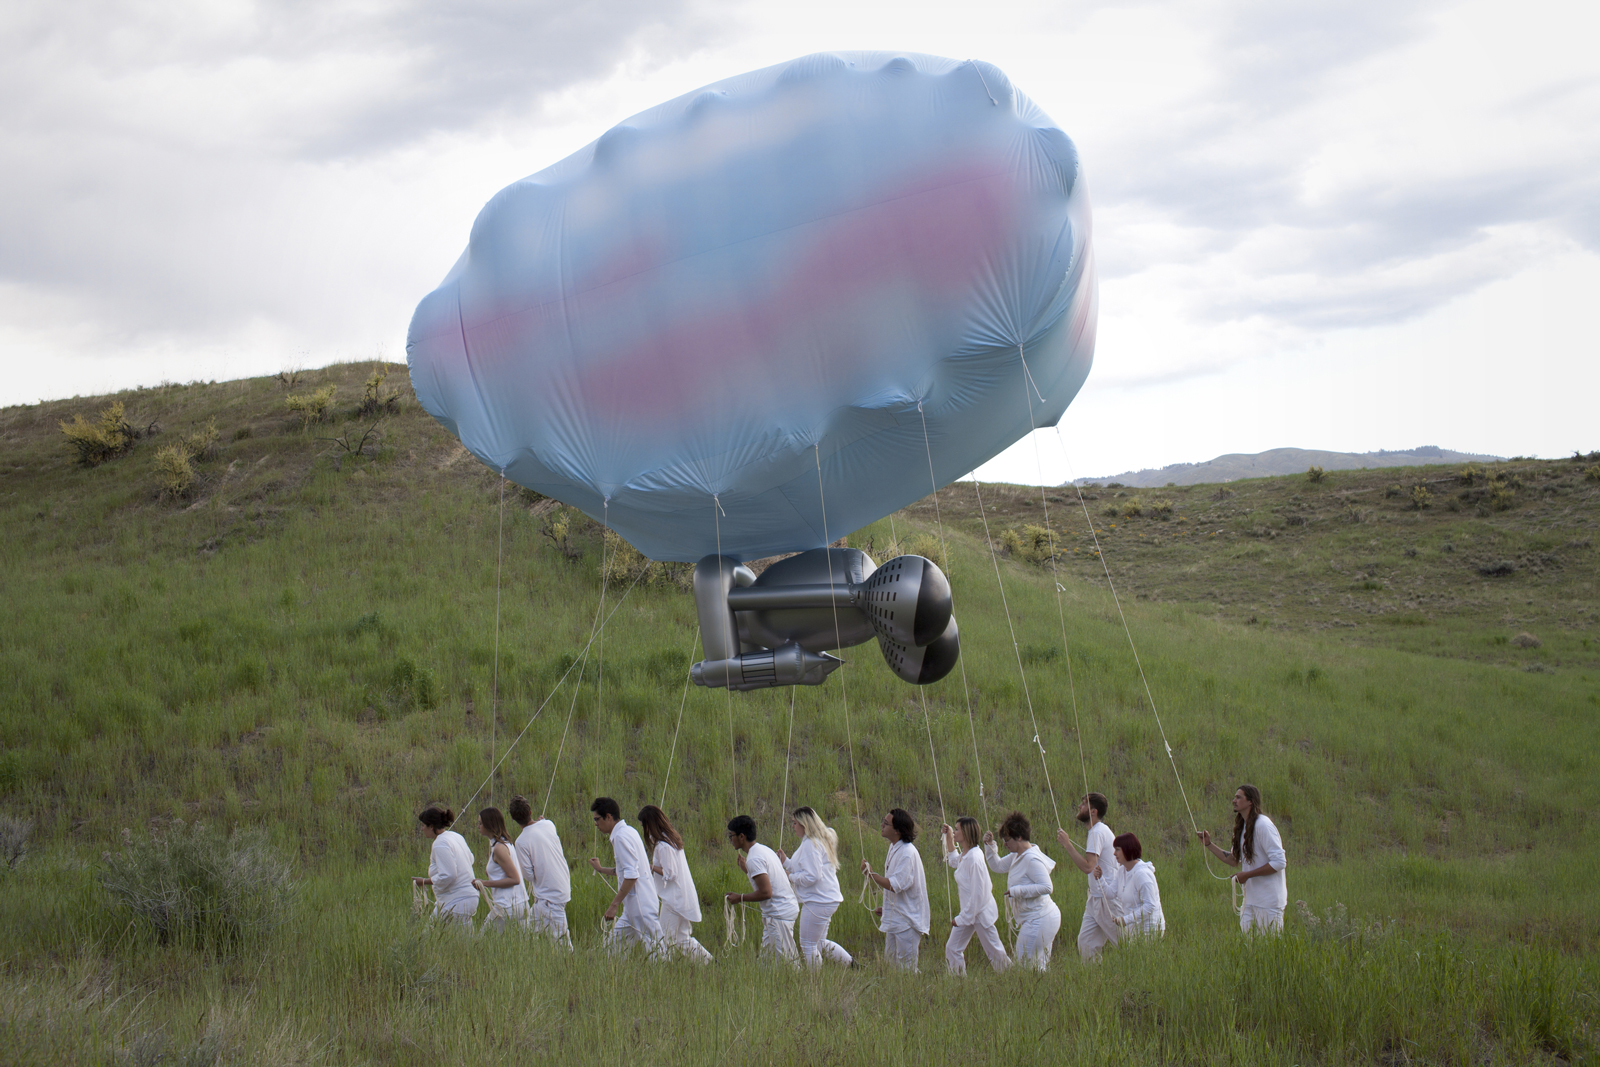 Cloudship performance art in the Boise foothills